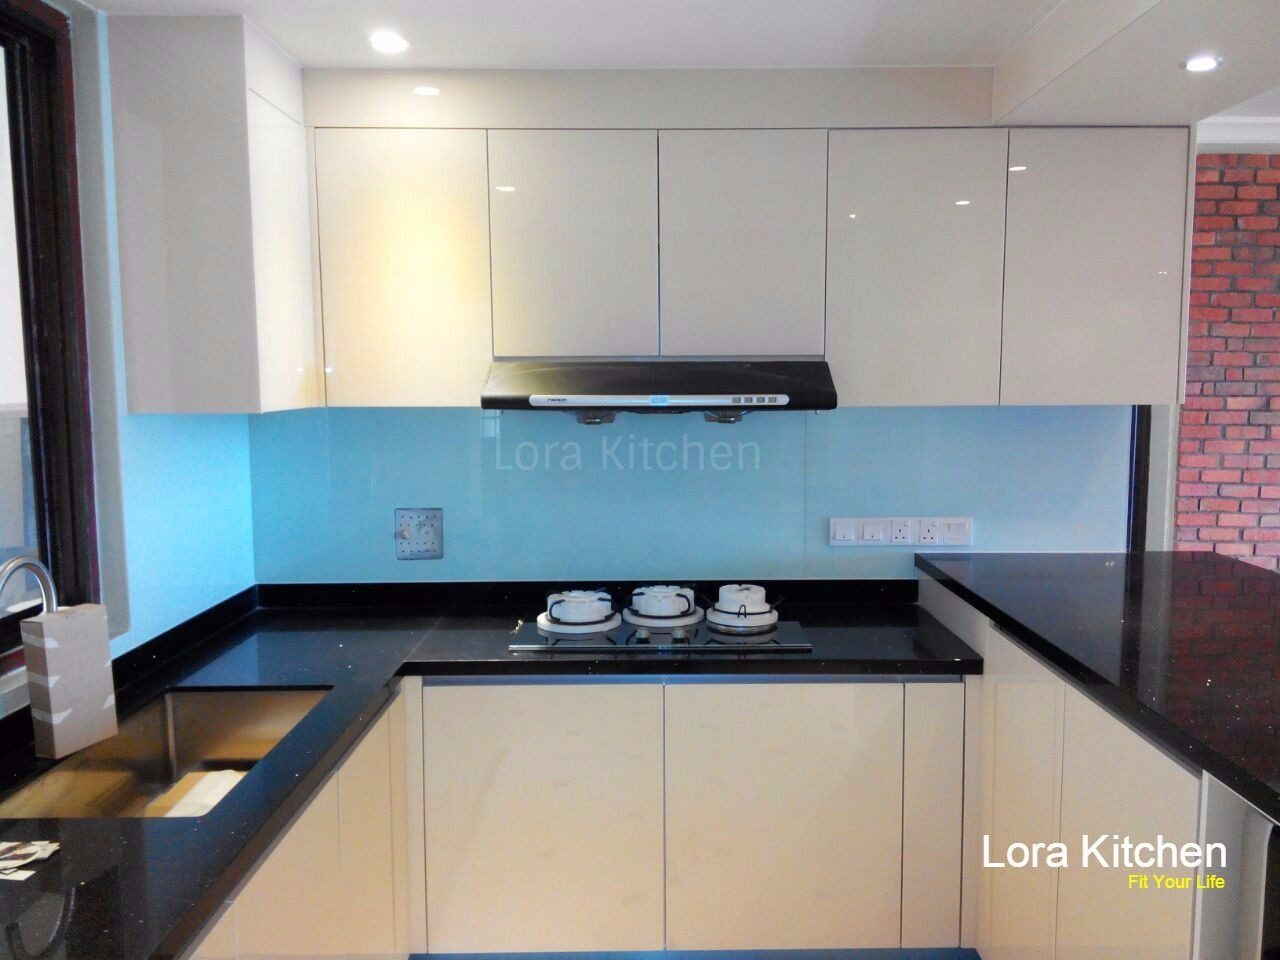 Lora Kitchen Design   Kitchen